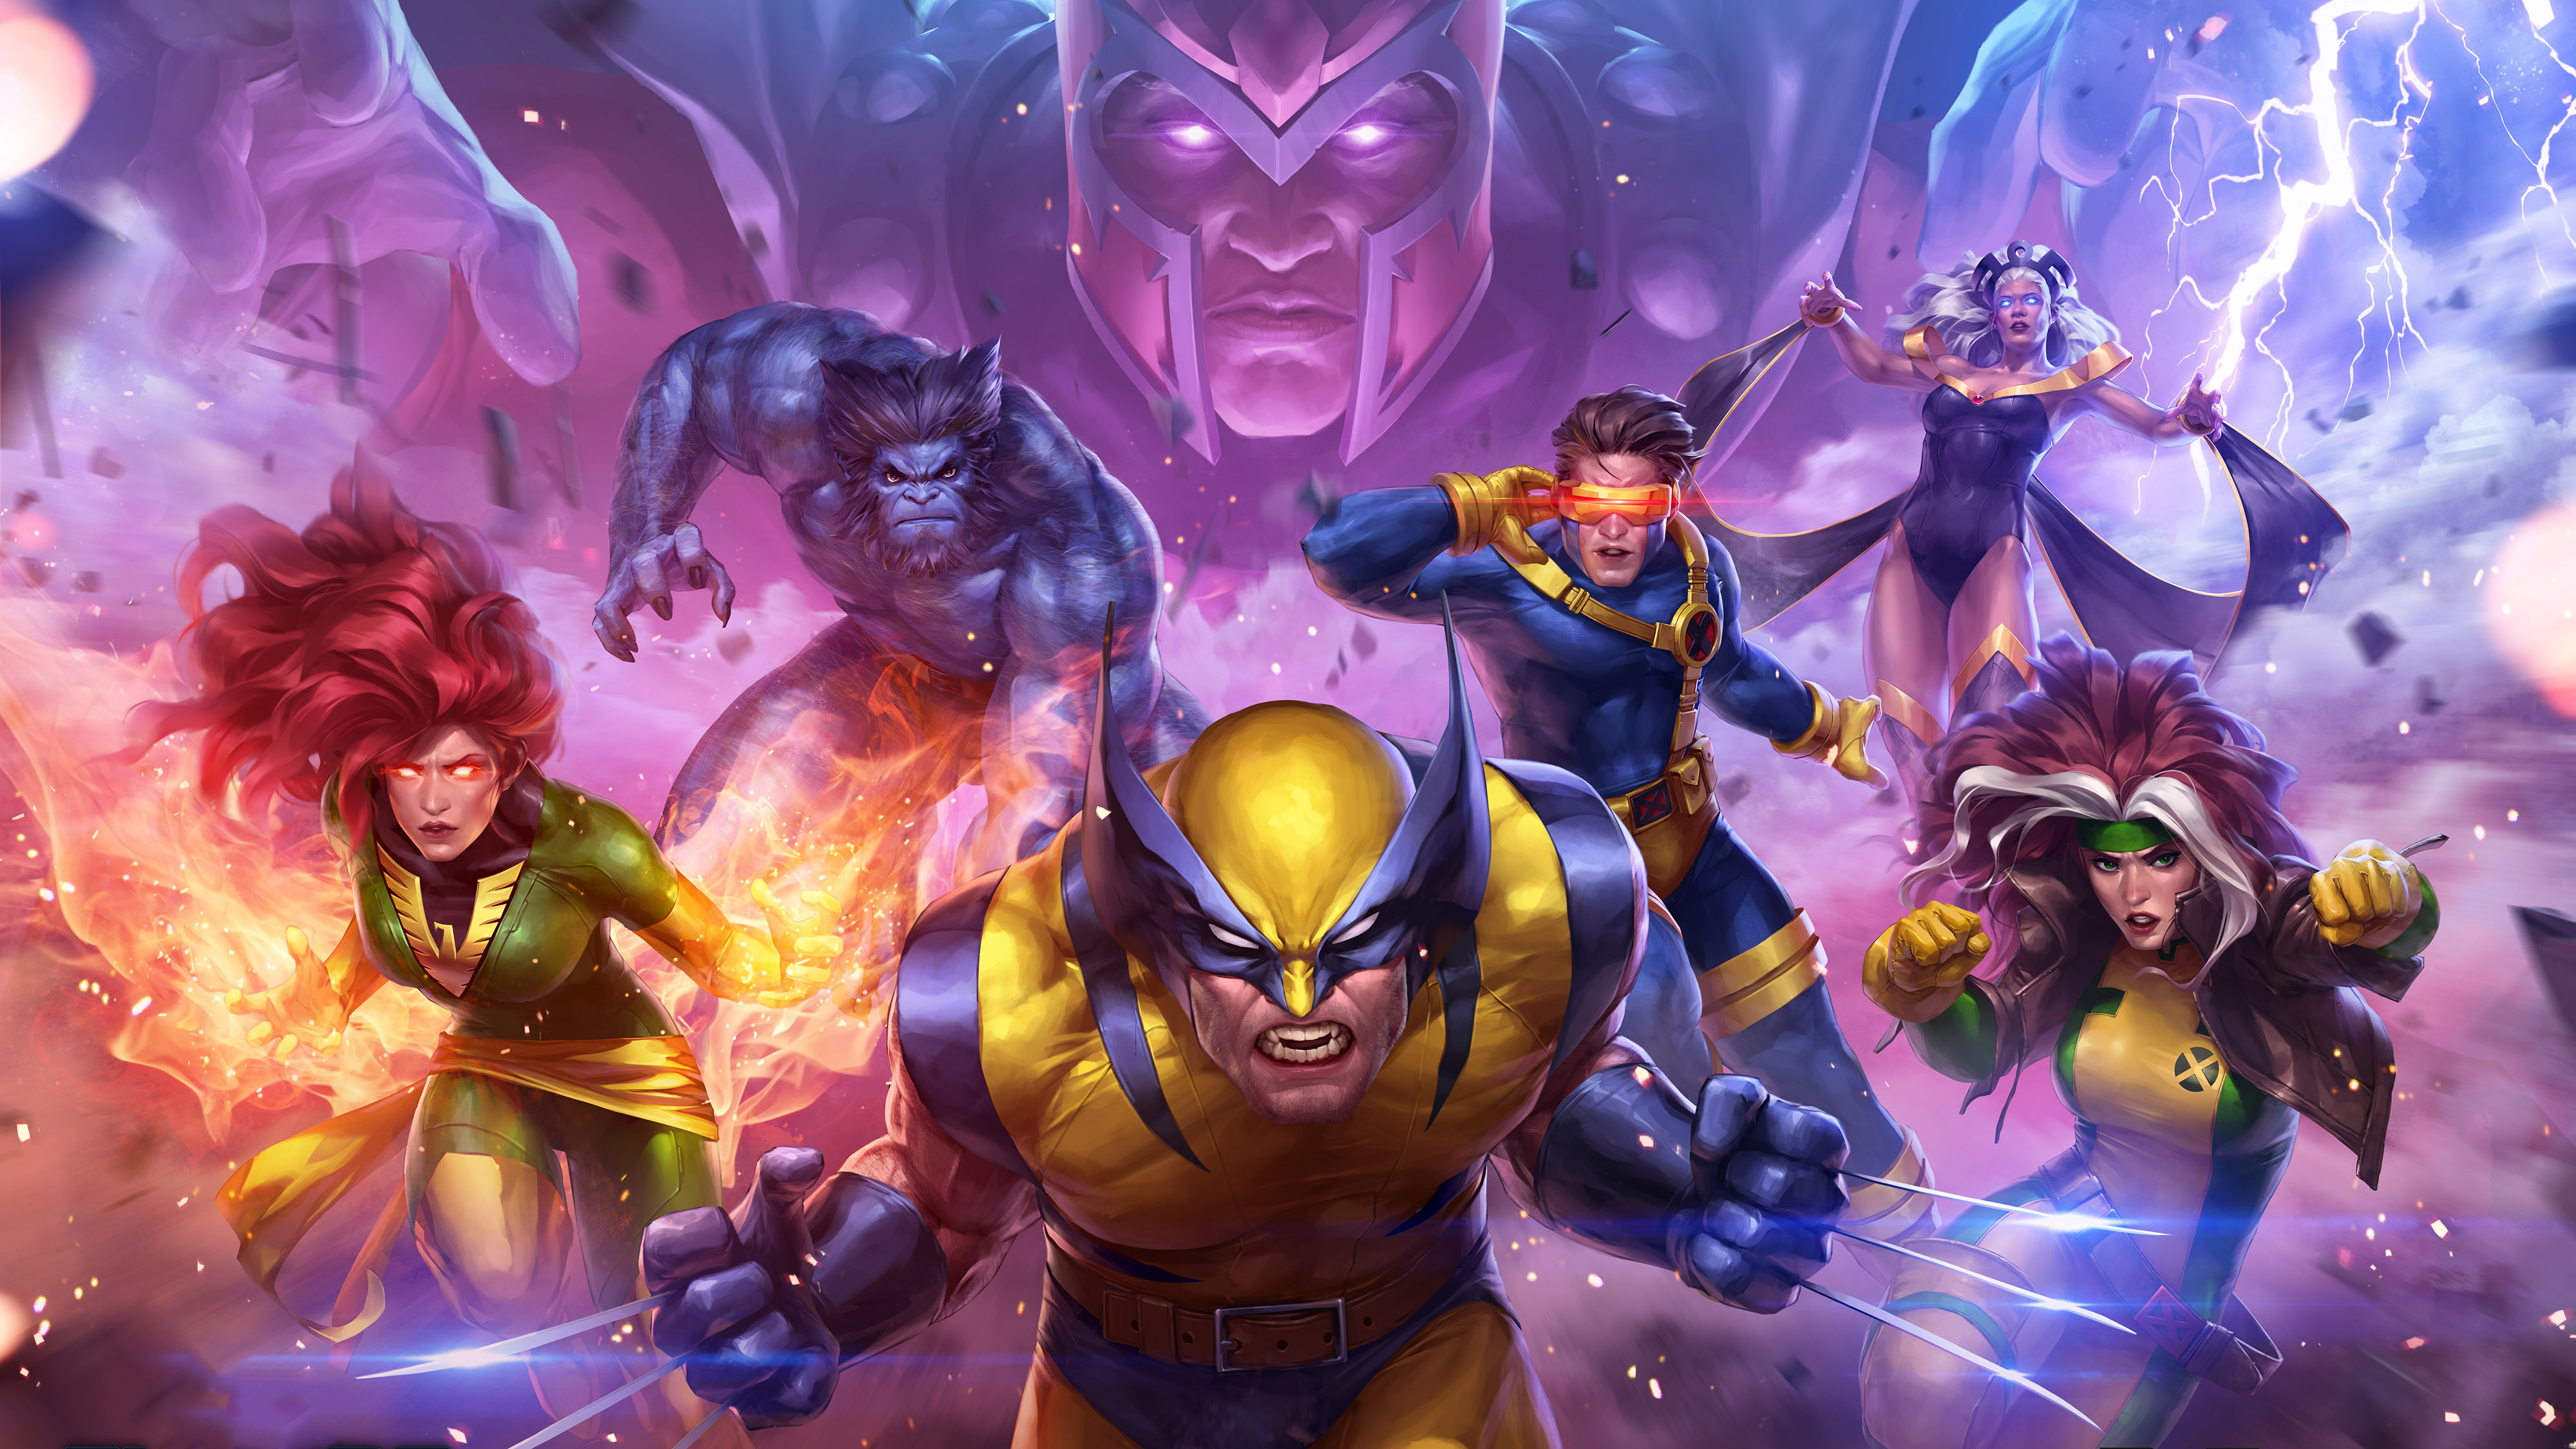 3840x2160 marvel contest of champions x men 4k hd 4k wallpapers images backgrounds photos and - Marvel hd wallpapers 4k ...